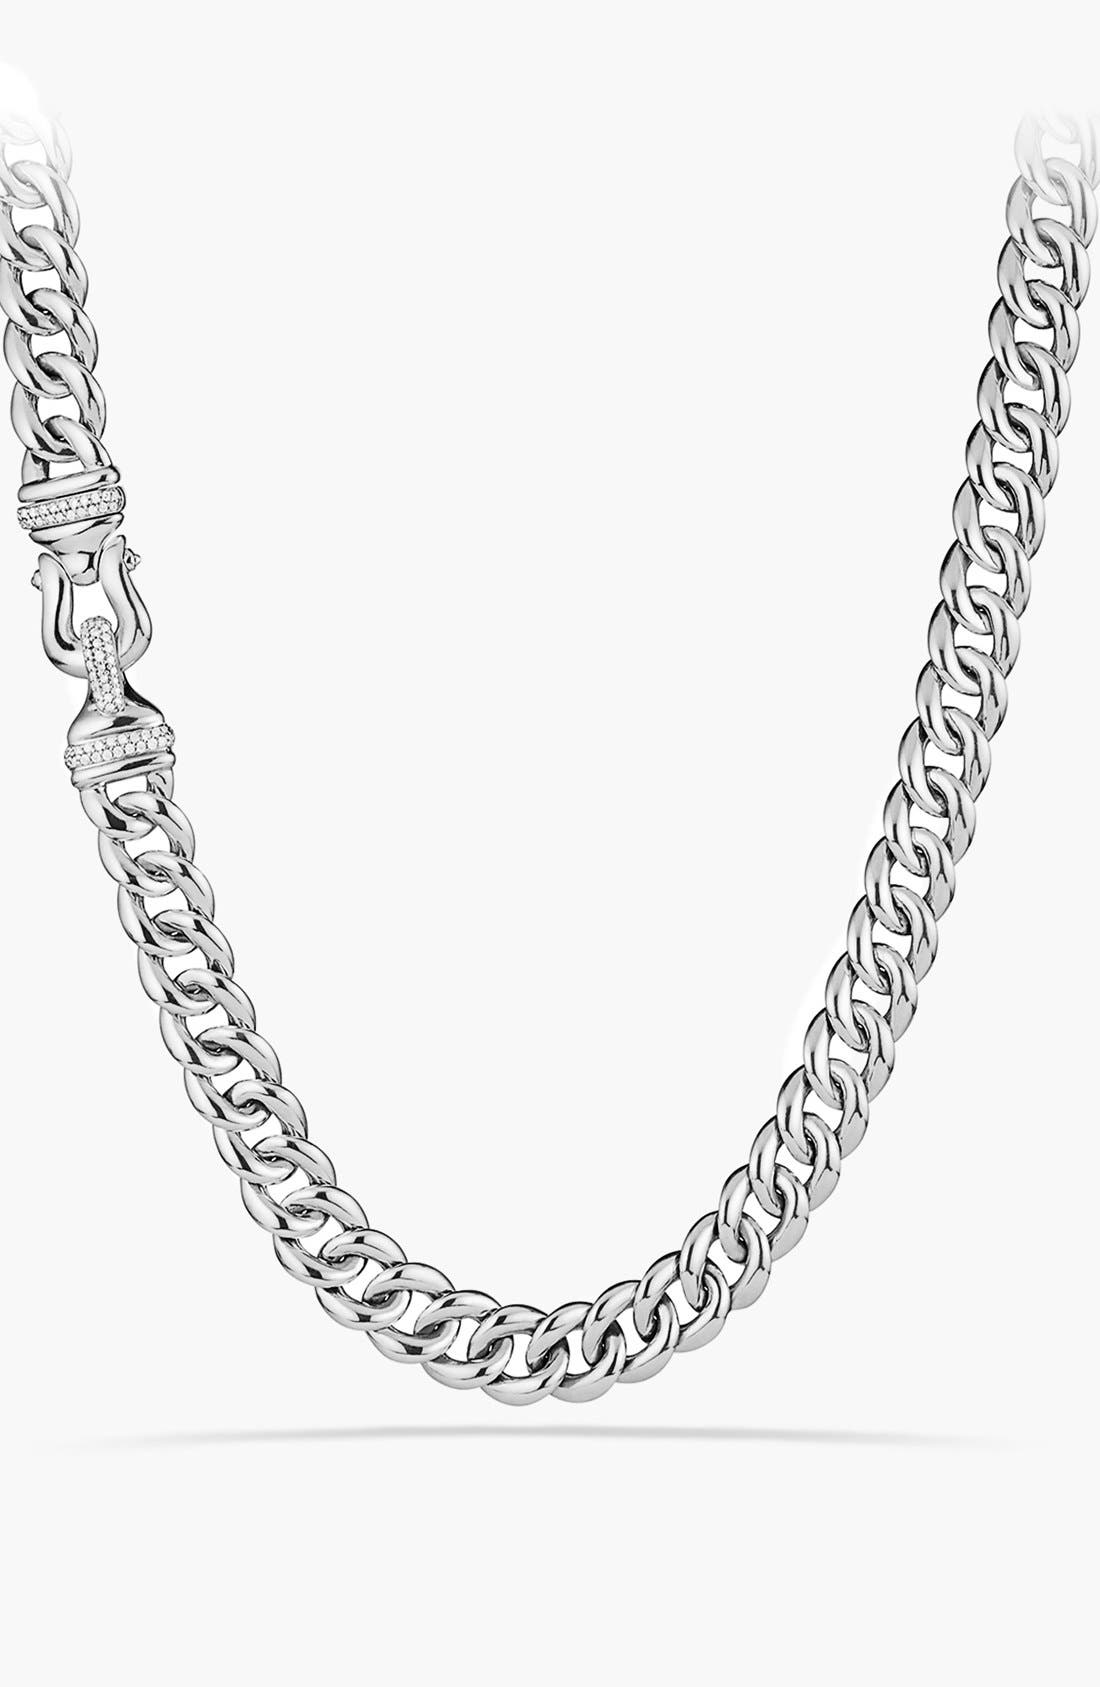 DAVID YURMAN Buckle Chain Necklace with Diamonds